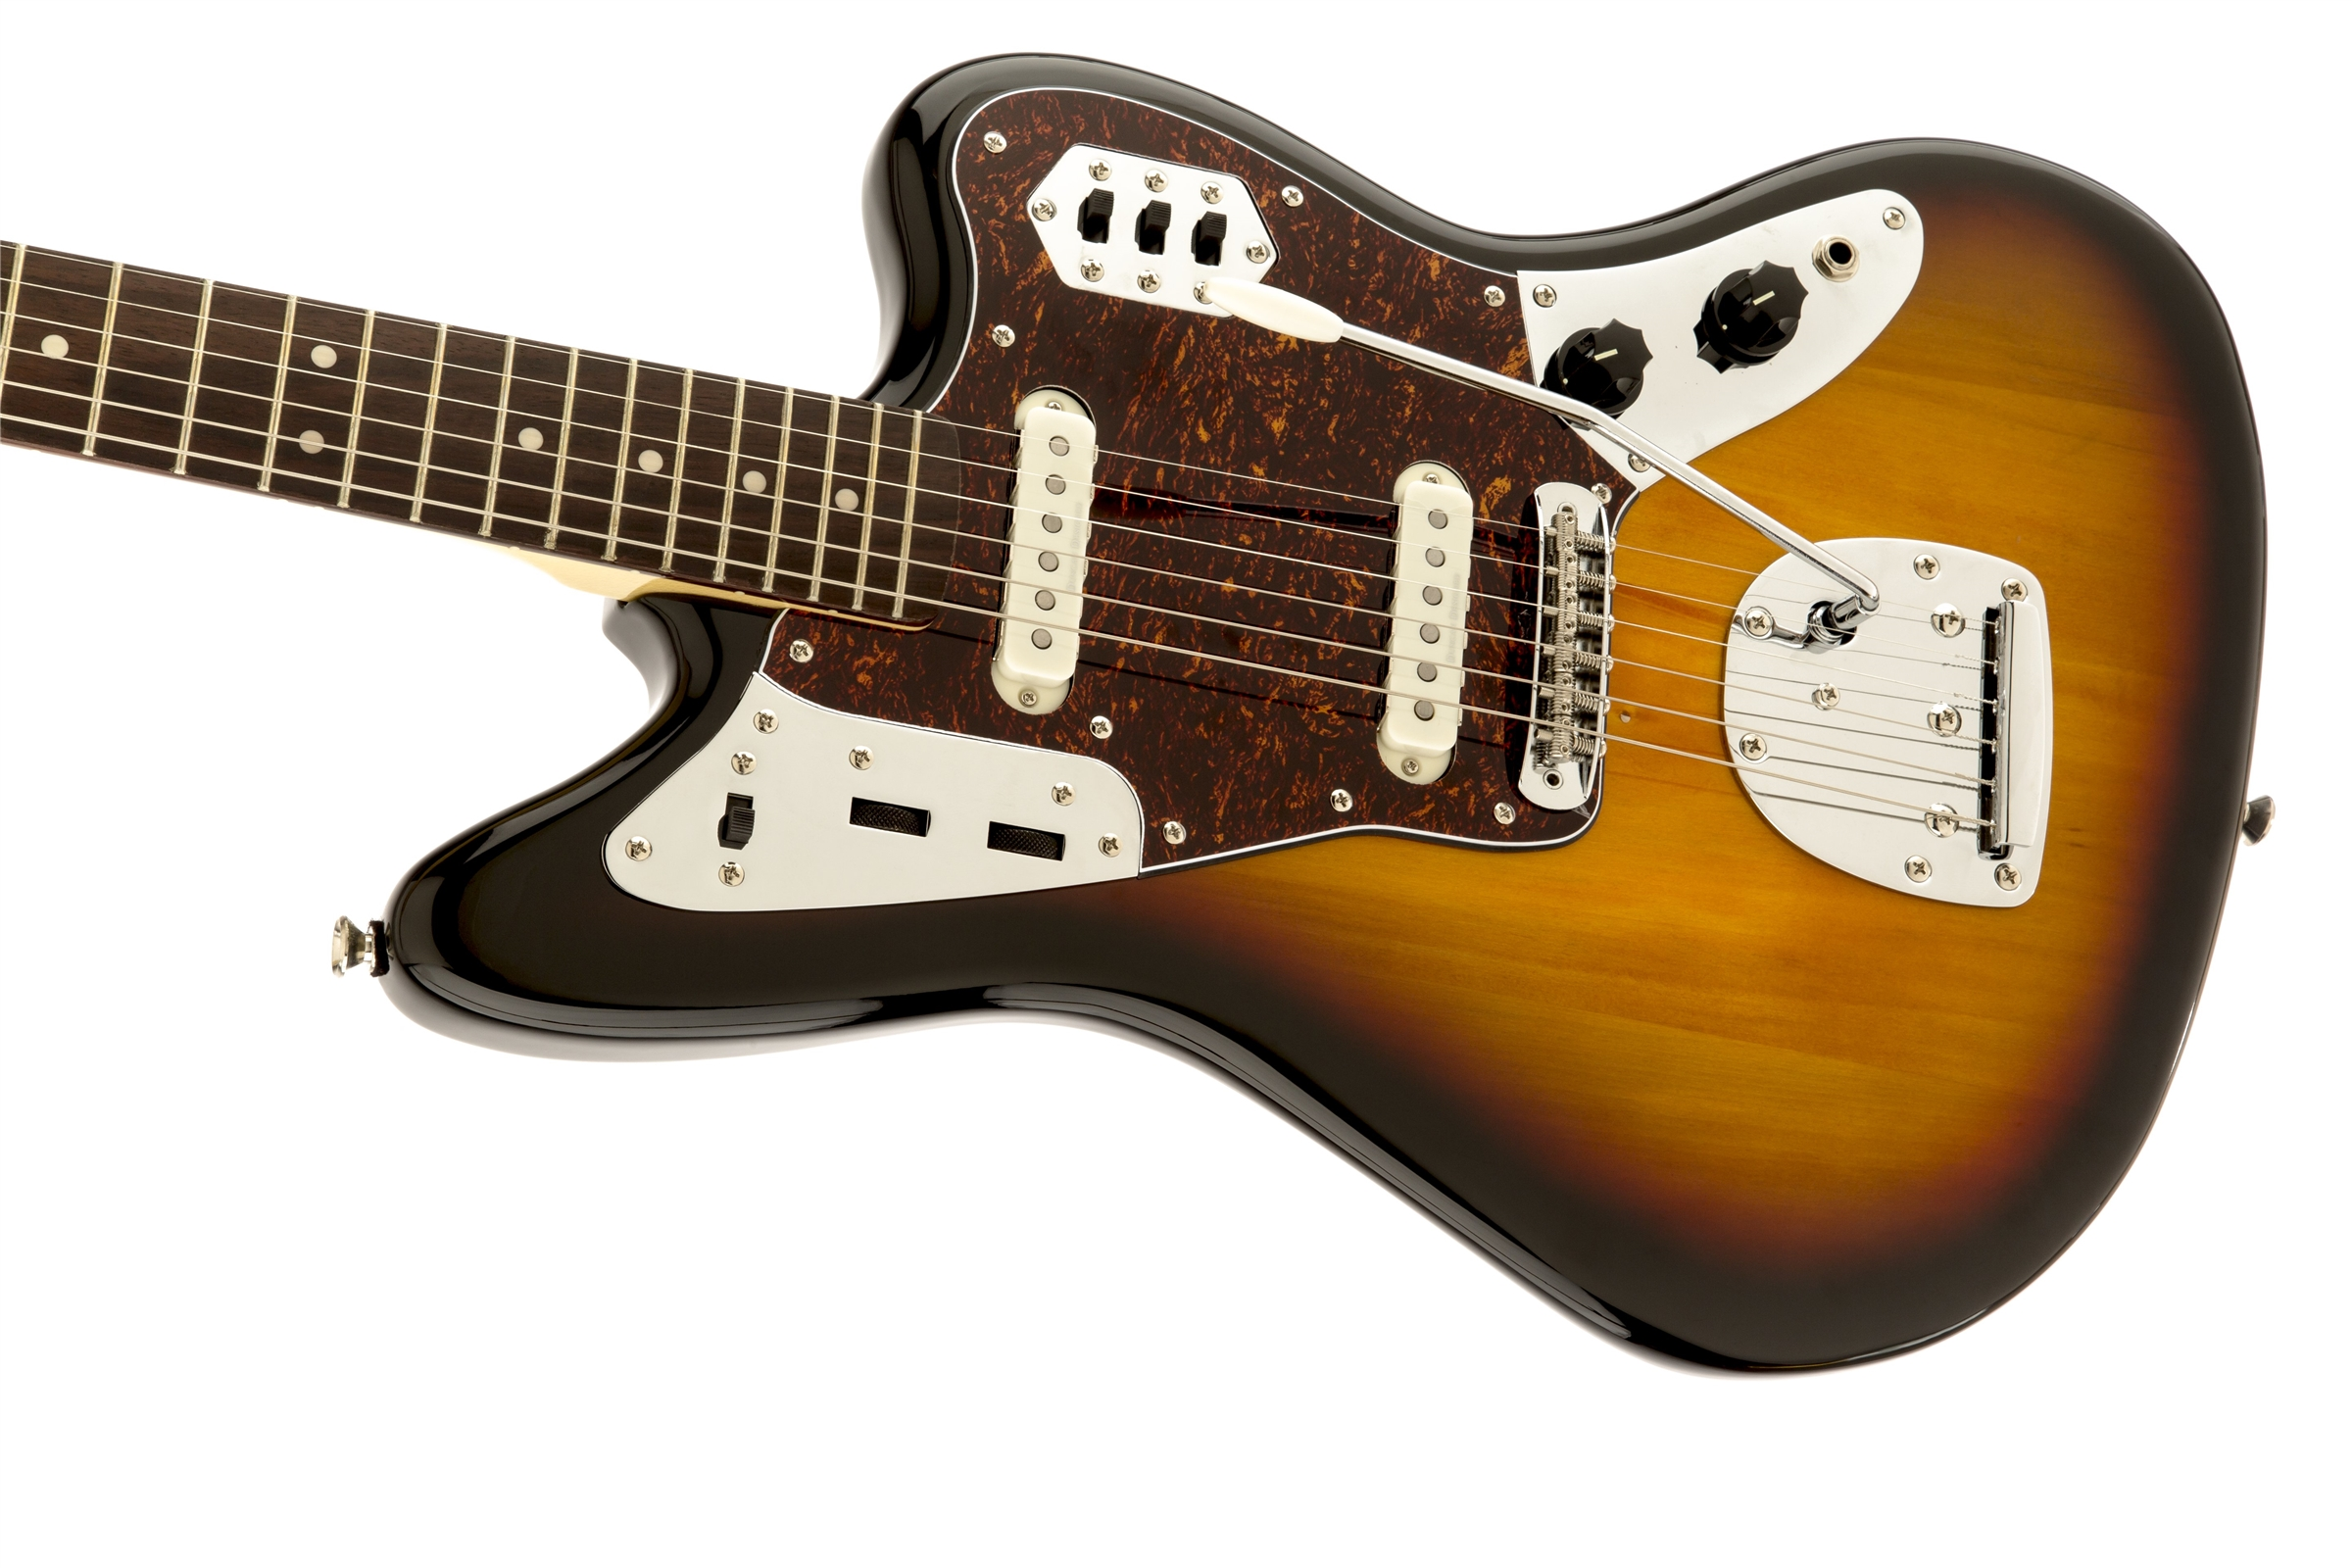 Fender Squier Vintage Modified Jaguar Wiring Diagram Free Active Pickup Diagrams Jag Stang Showmaster Bass Special Hh